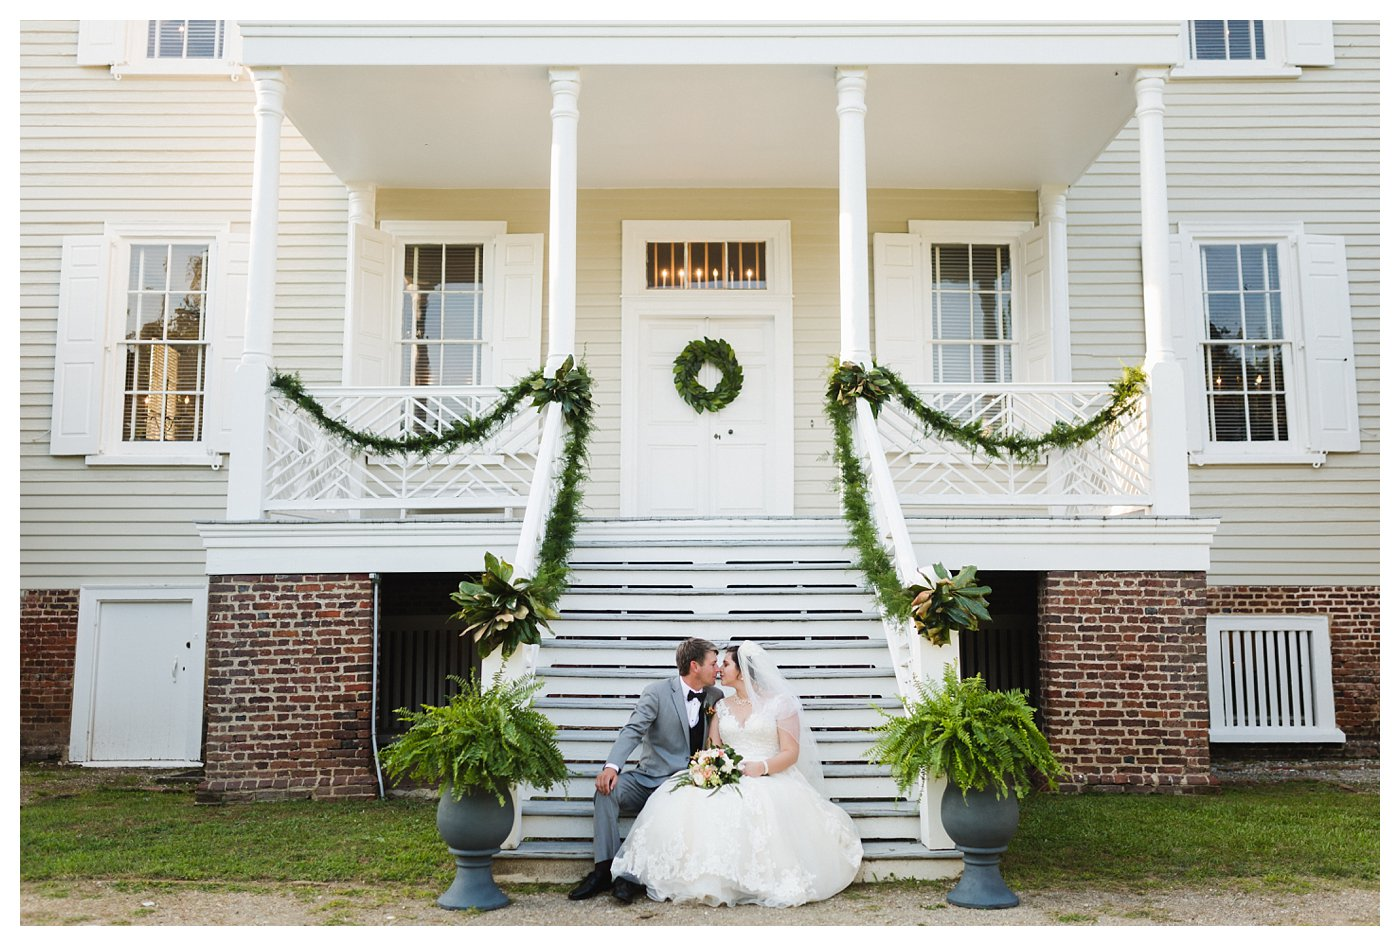 Historic_Hope_Plantation_Wedding_Photography_Sage_Summer_Outdoor_Windsor_NC_0038.jpg